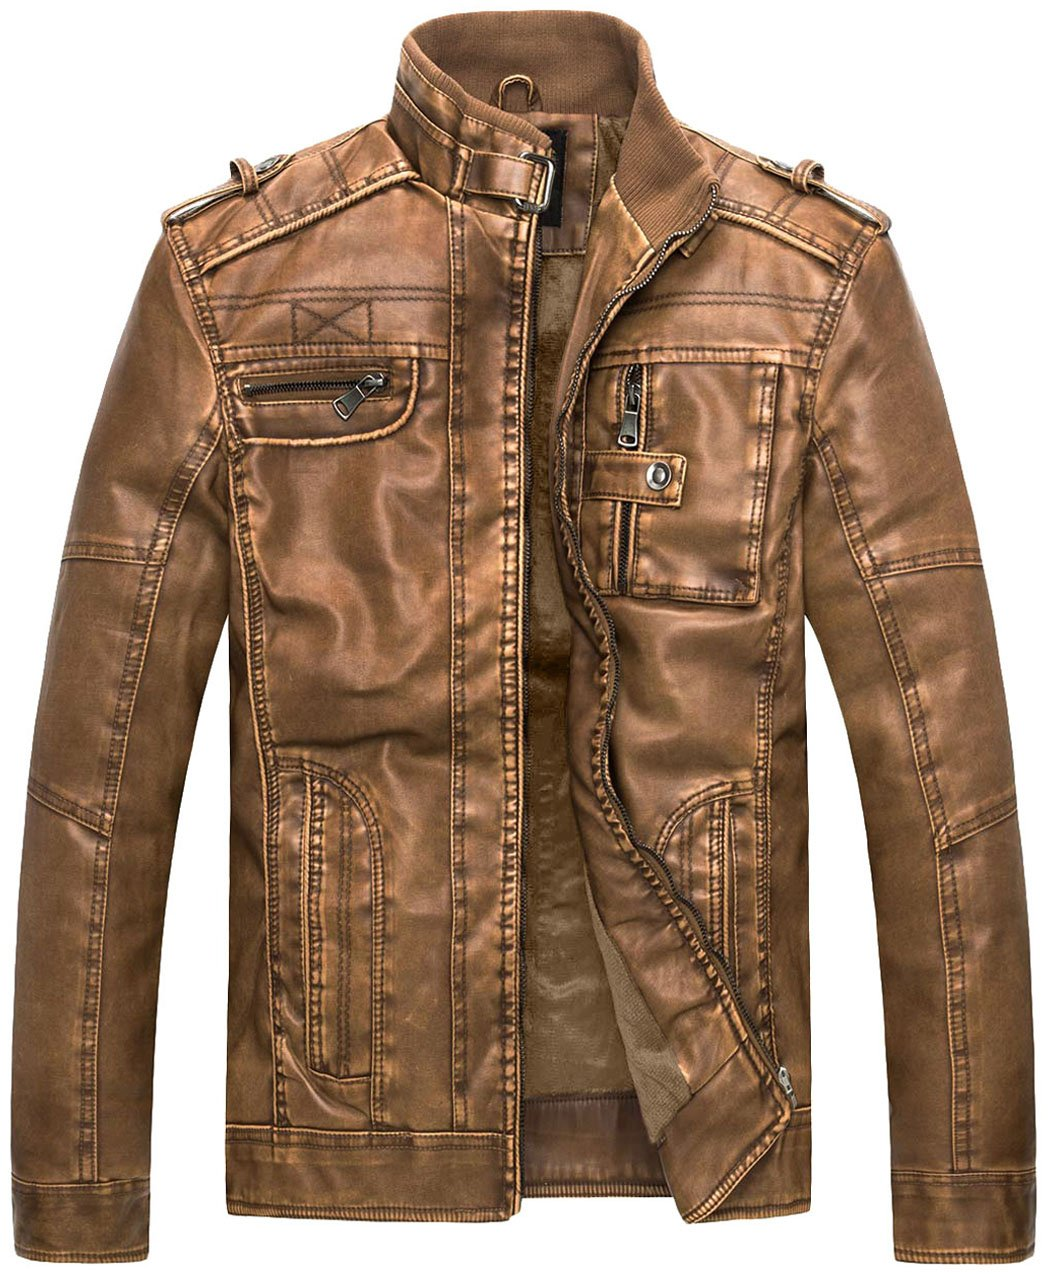 WantDo Men's Vintage Stand Collar Pu Leather Jacket, Camel US Large by Wantdo